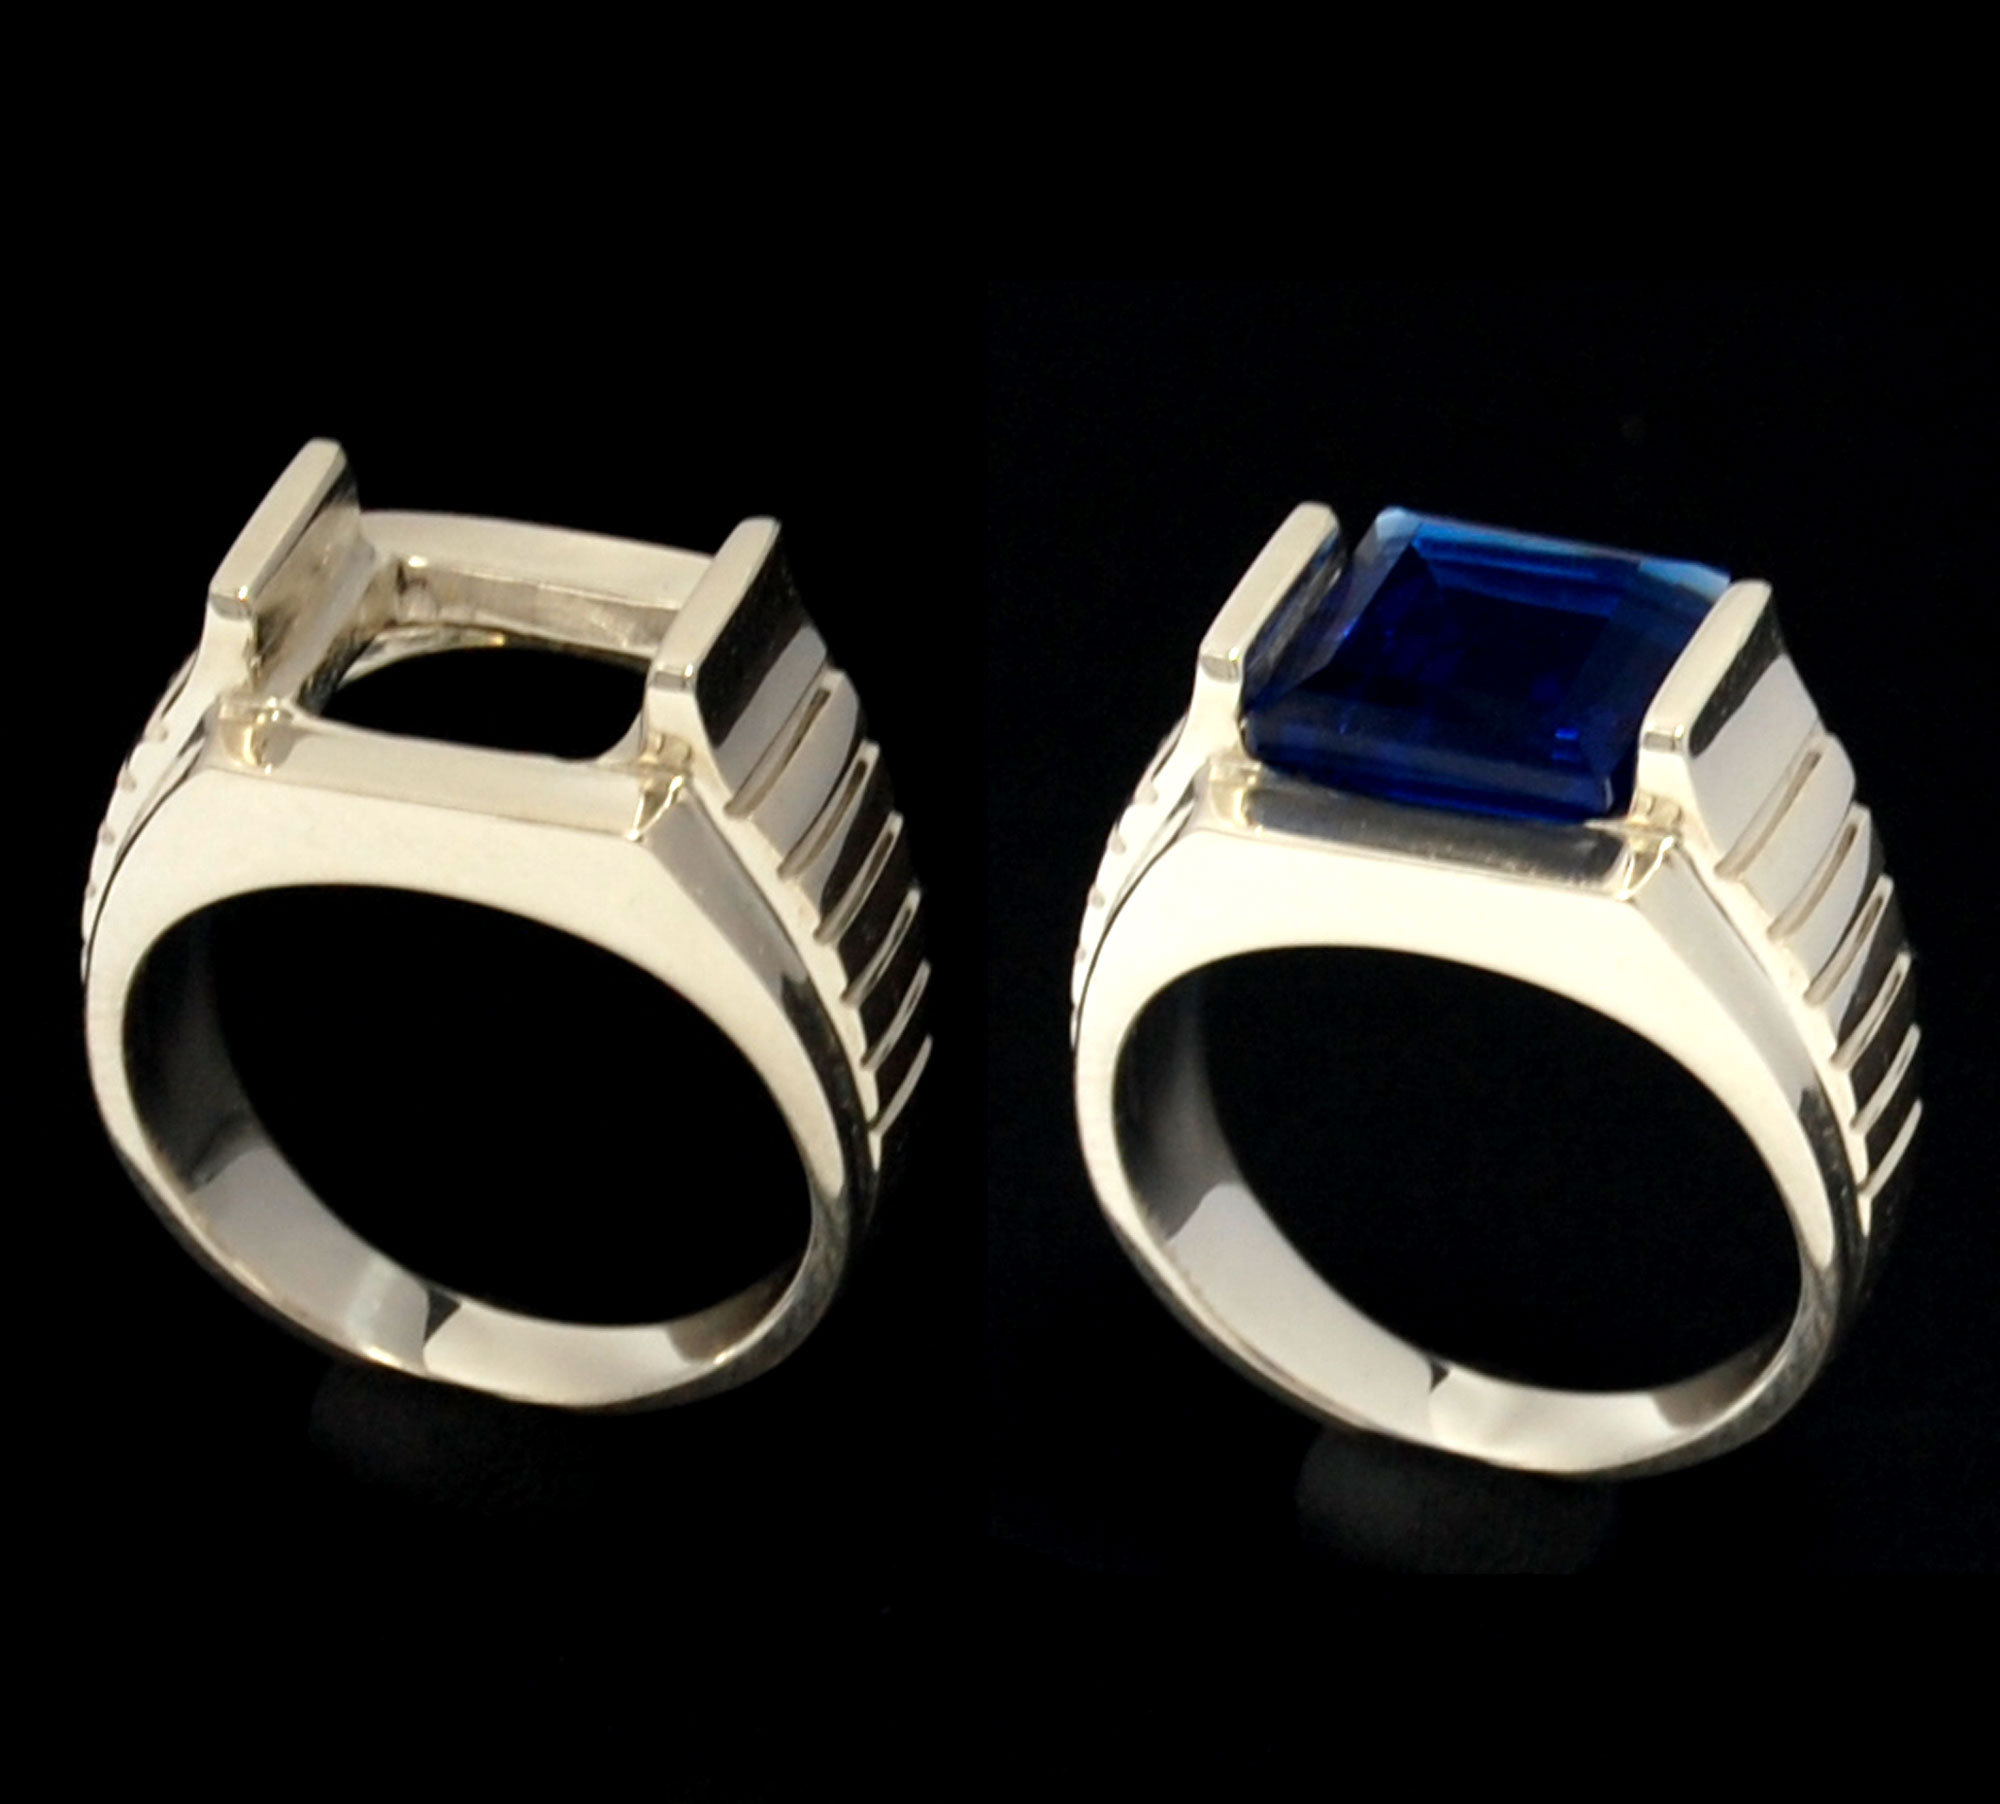 Blank silver ring radiant 10 x 10